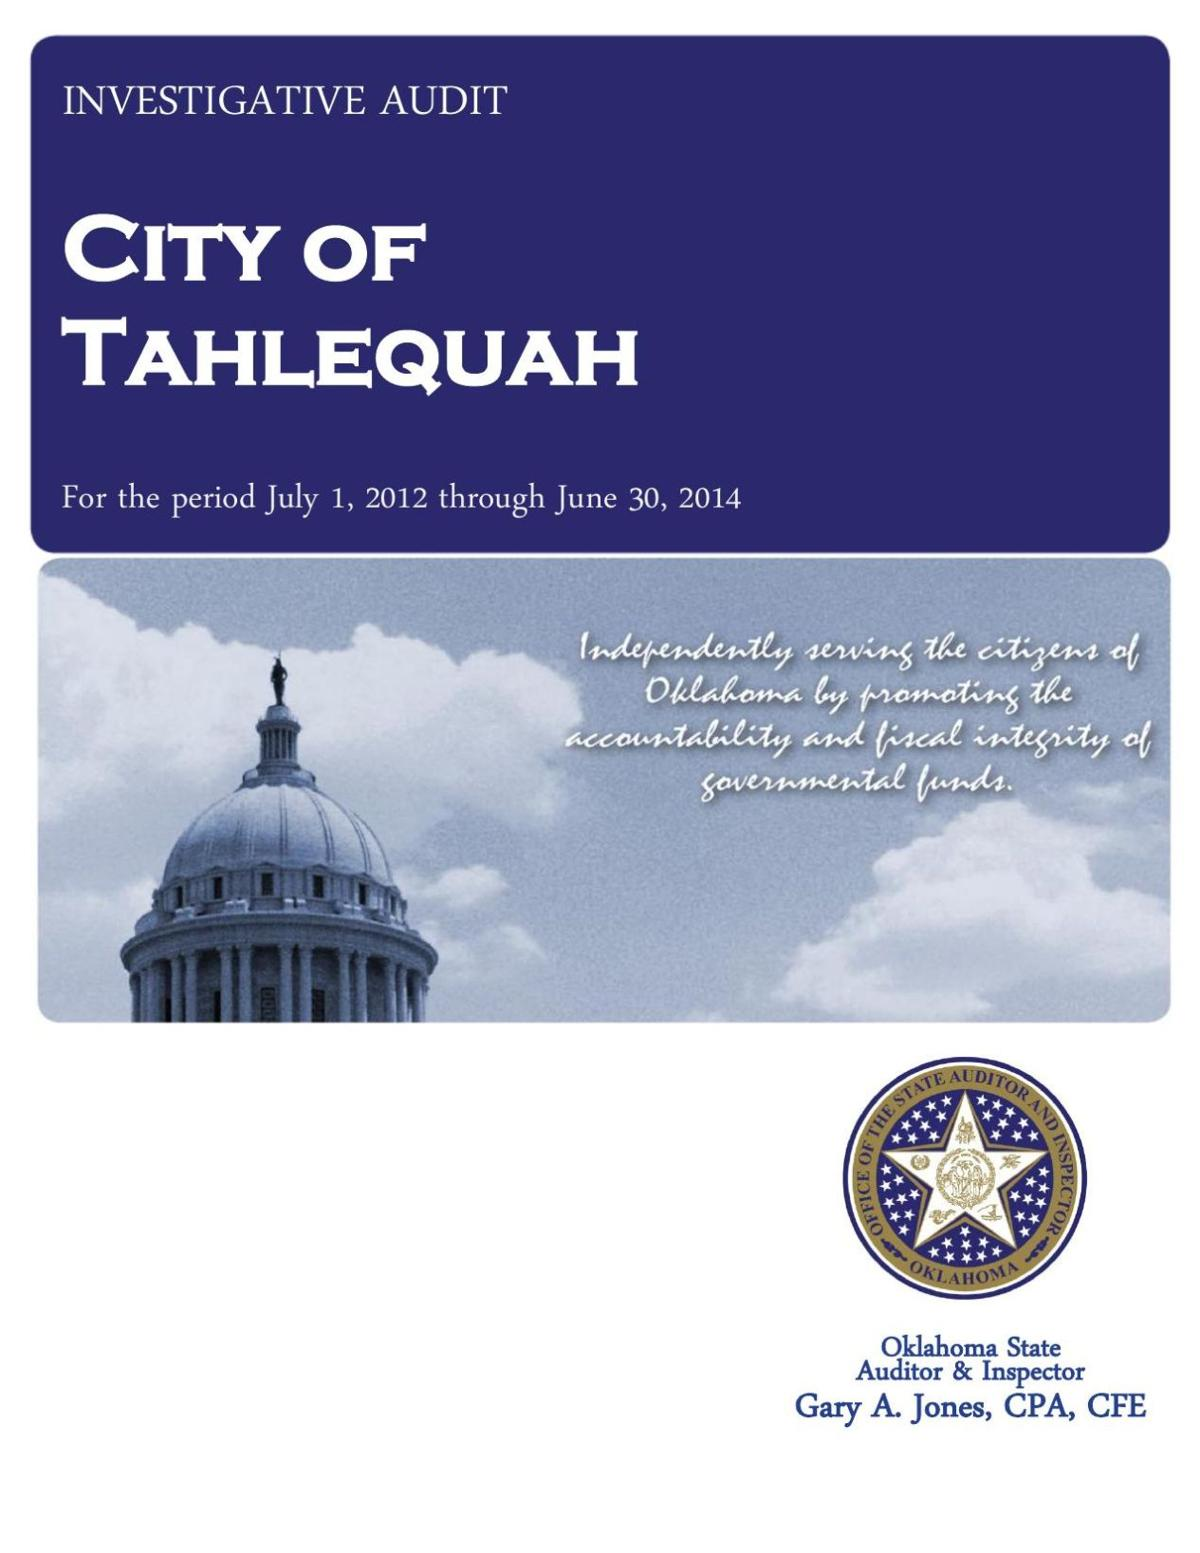 State Auditor & Inspector report on city of Tahlequah